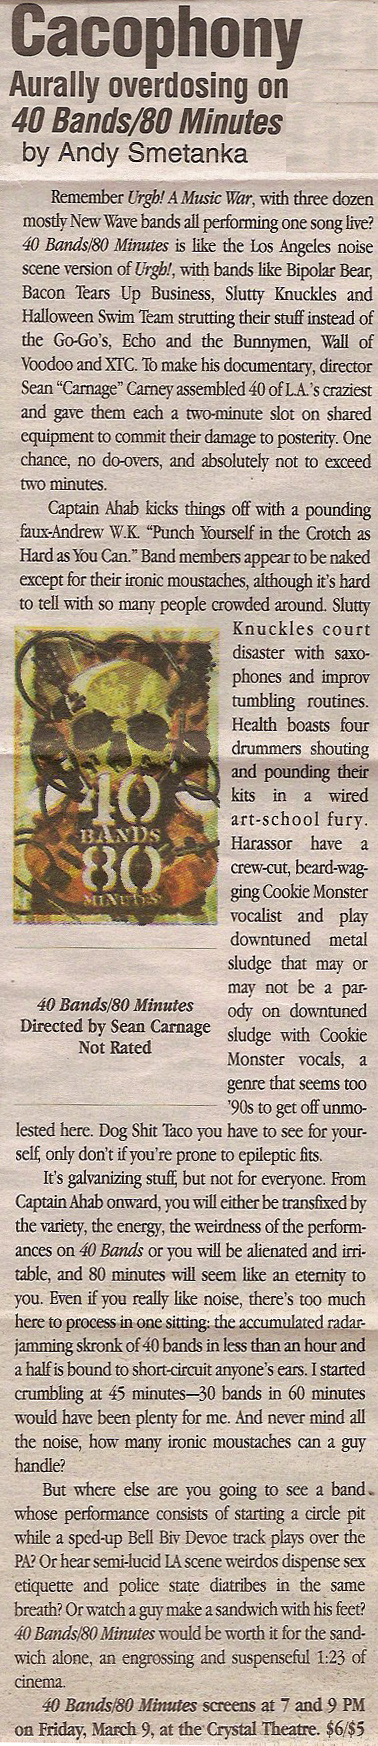 40 BANDS 80 MINUTES! INLAND EMPIRE PREMIERE THIS FRIDAY; AWESOME NEW REVIEWS, TOO!!